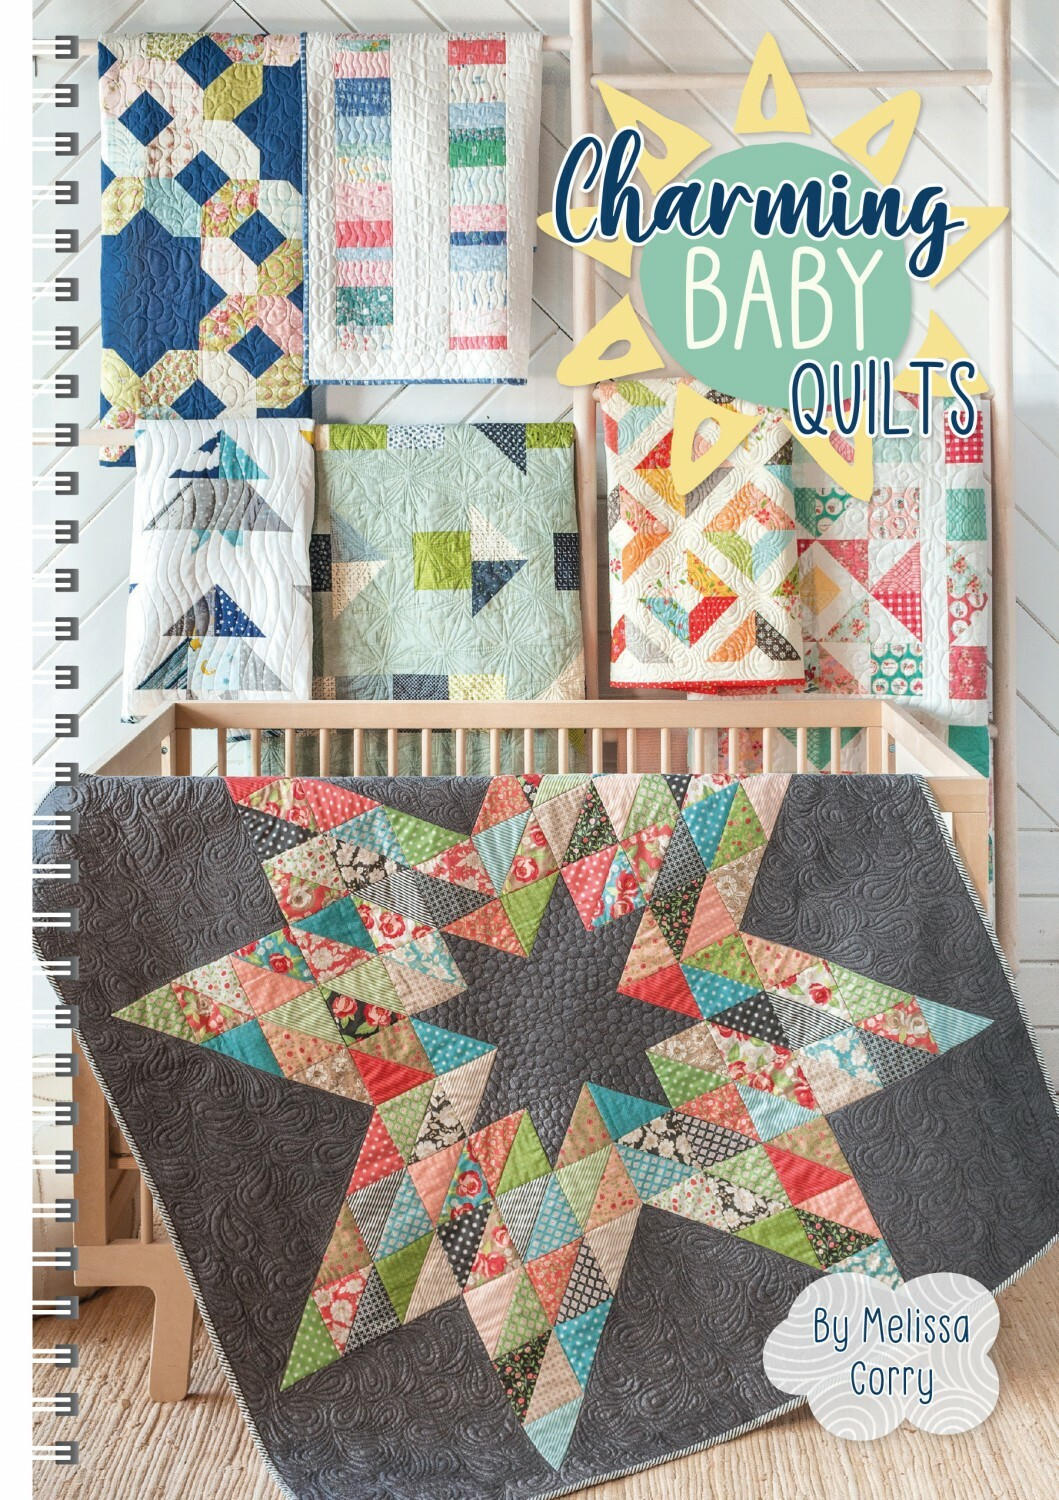 Charming Baby Quilts 56466